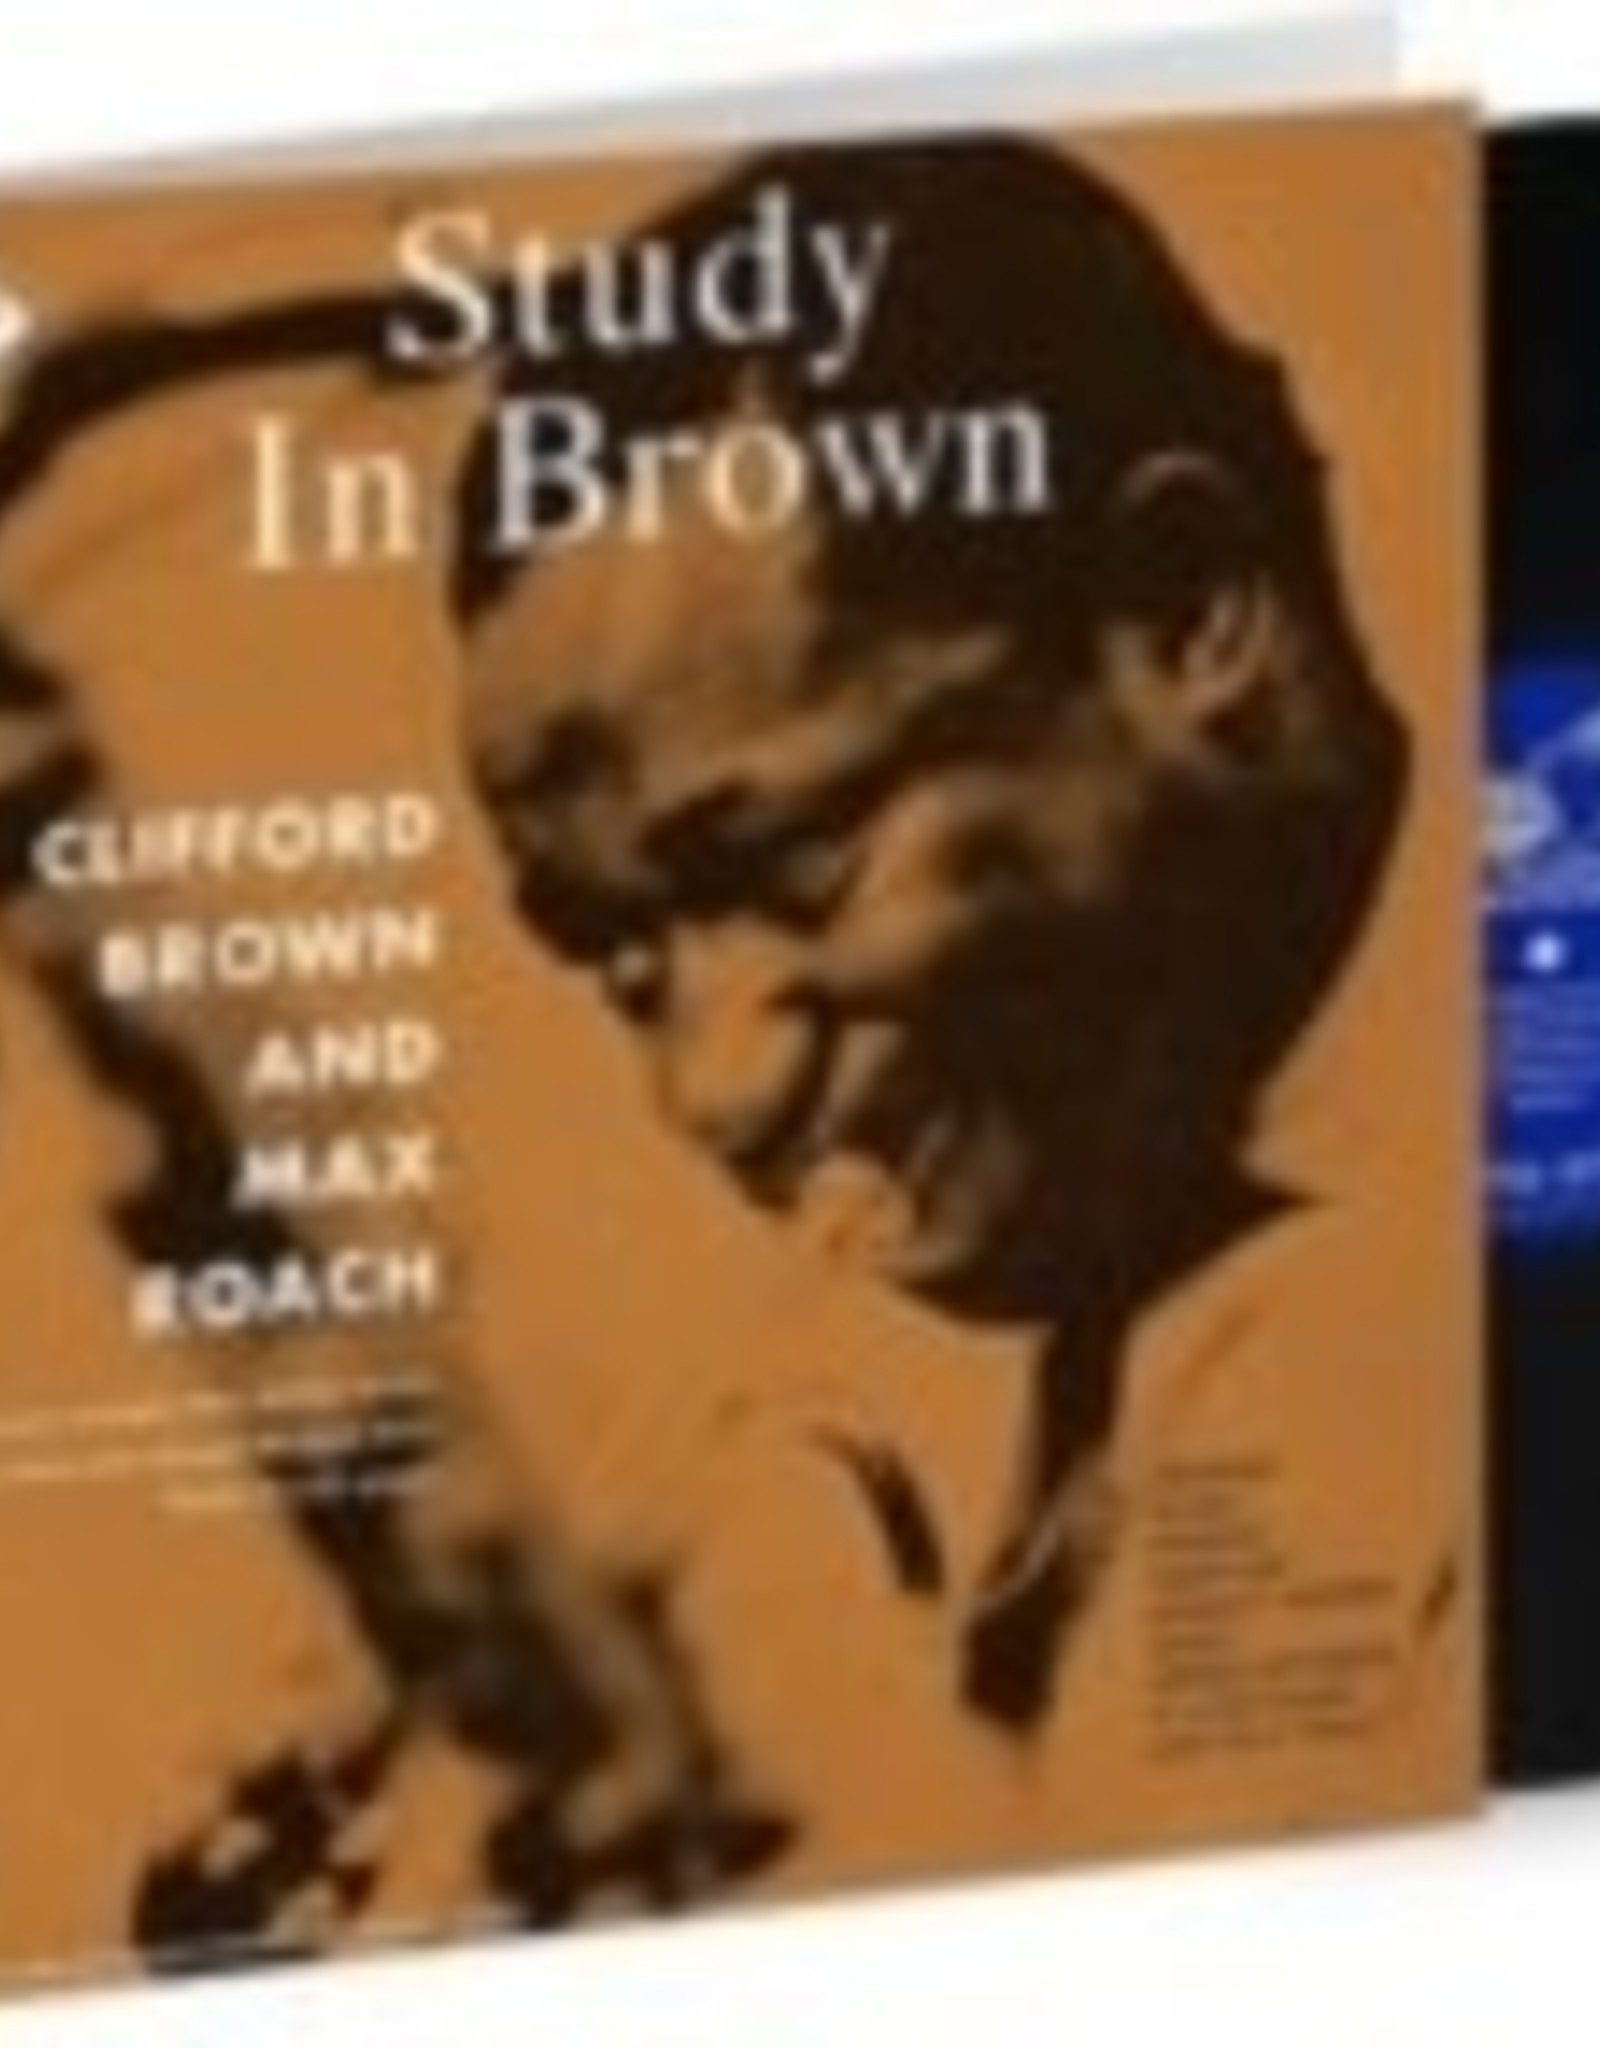 Clifford Brown and Max Roach - A Study In Brown (Analog Master)